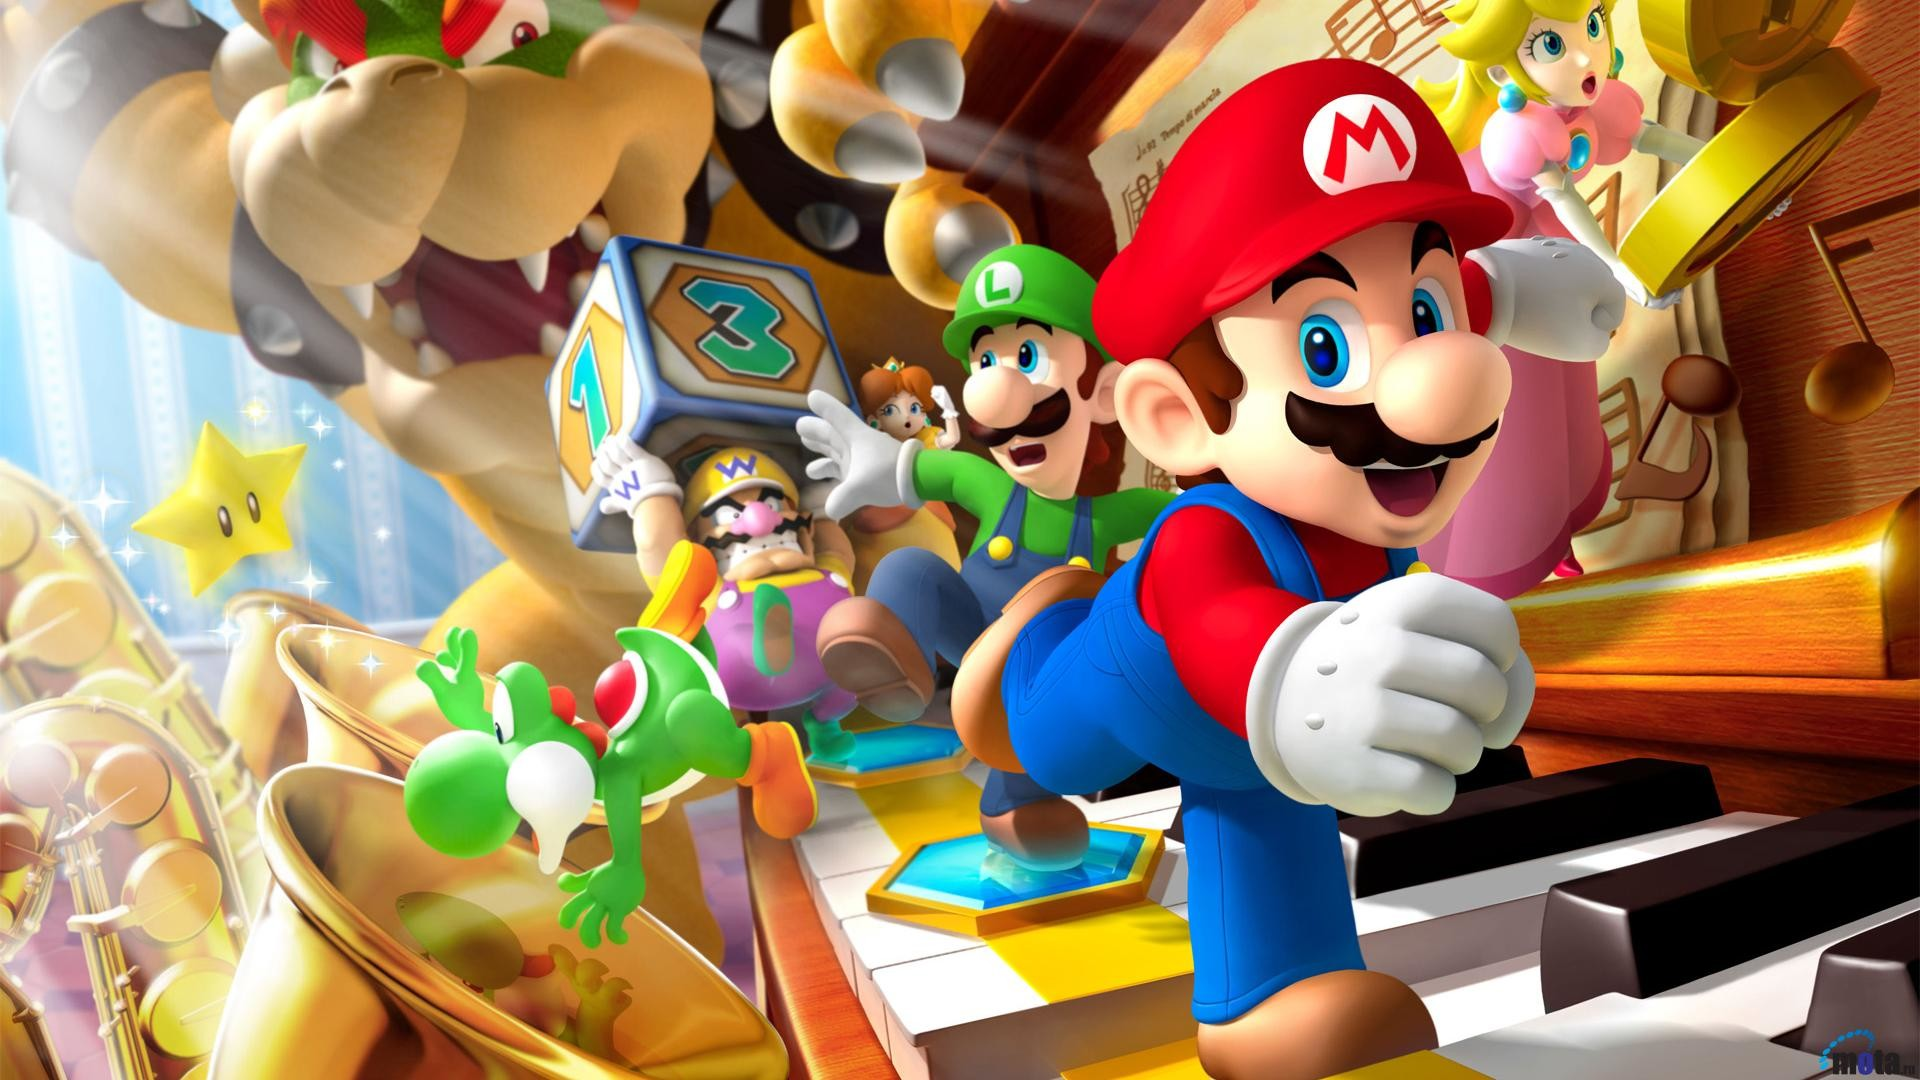 Nintendo Images On Wallpaper Hd 1920 x 1080 px 623.08 KB retro all iphone  charcters tranparent